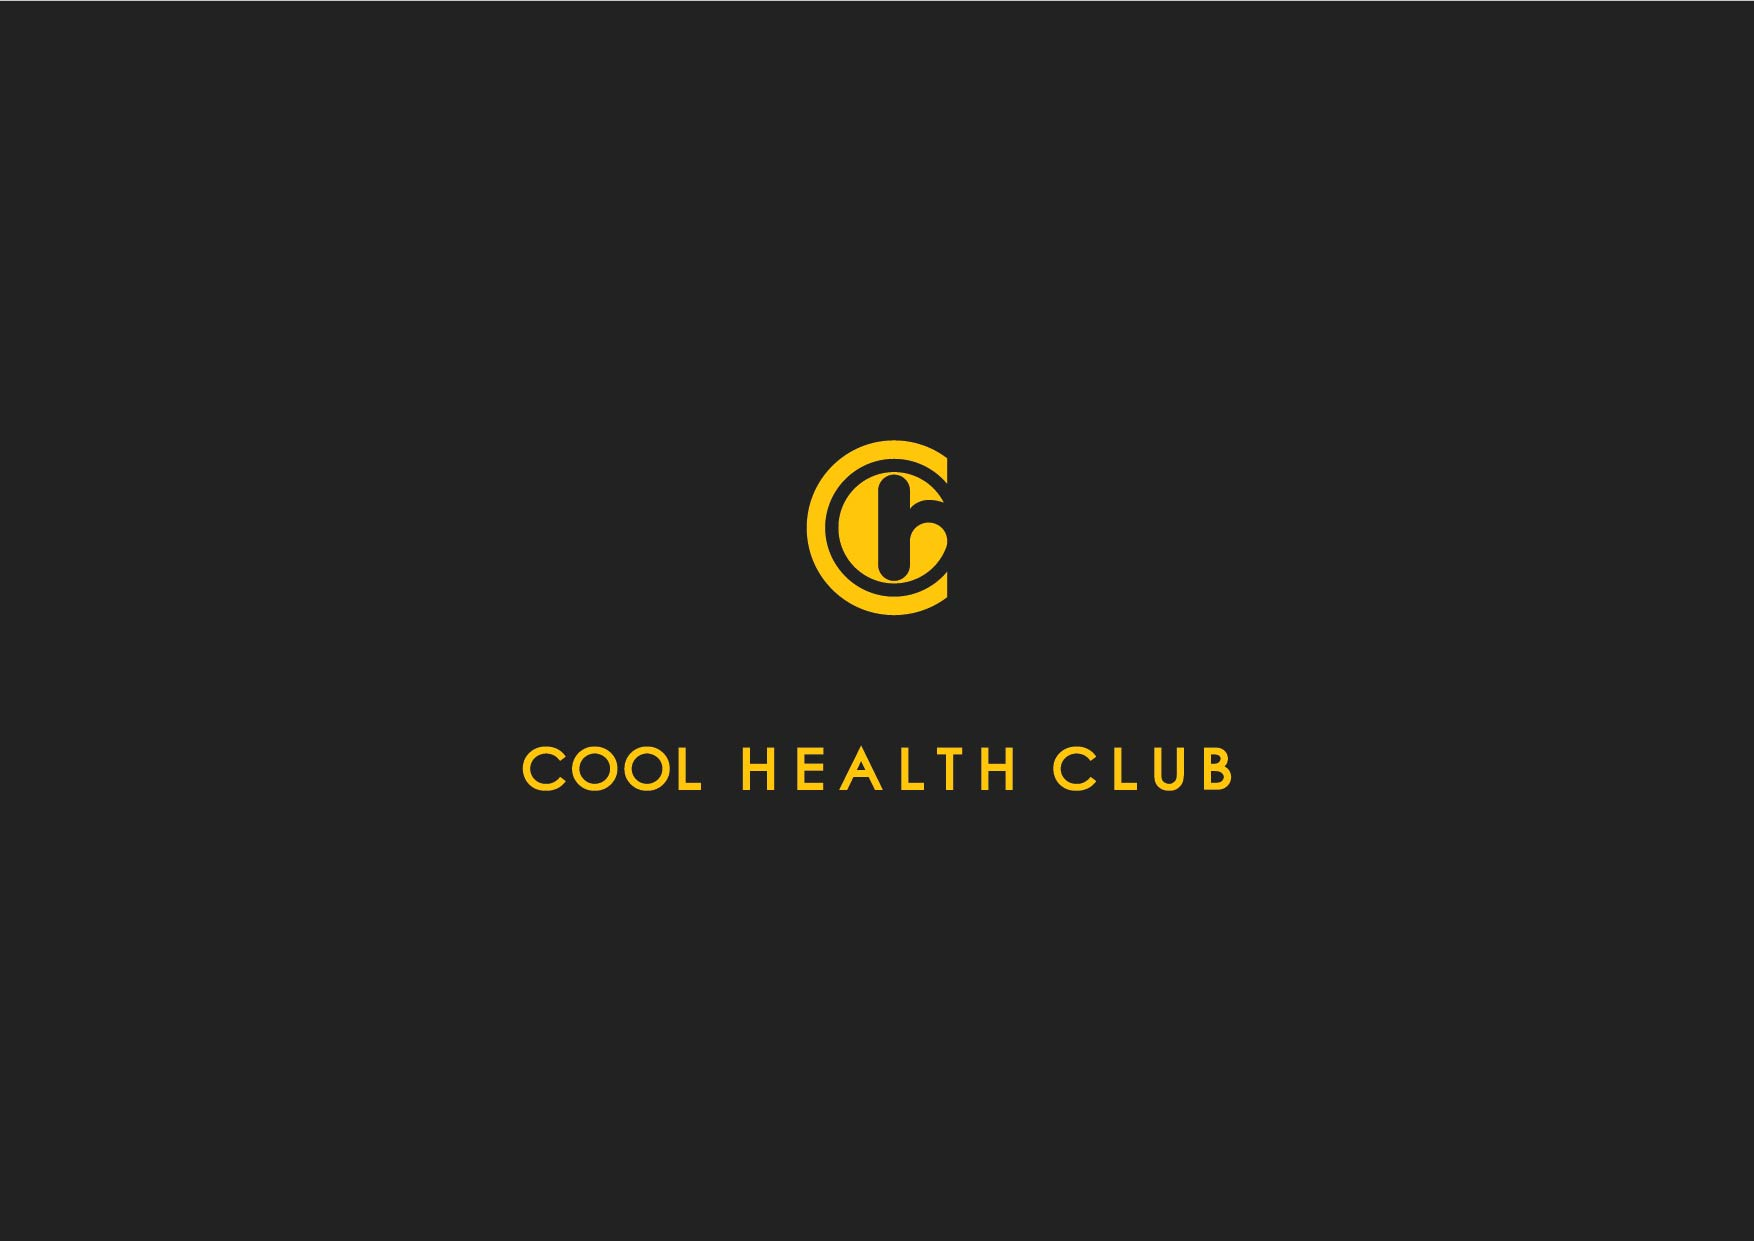 Cool Health Club